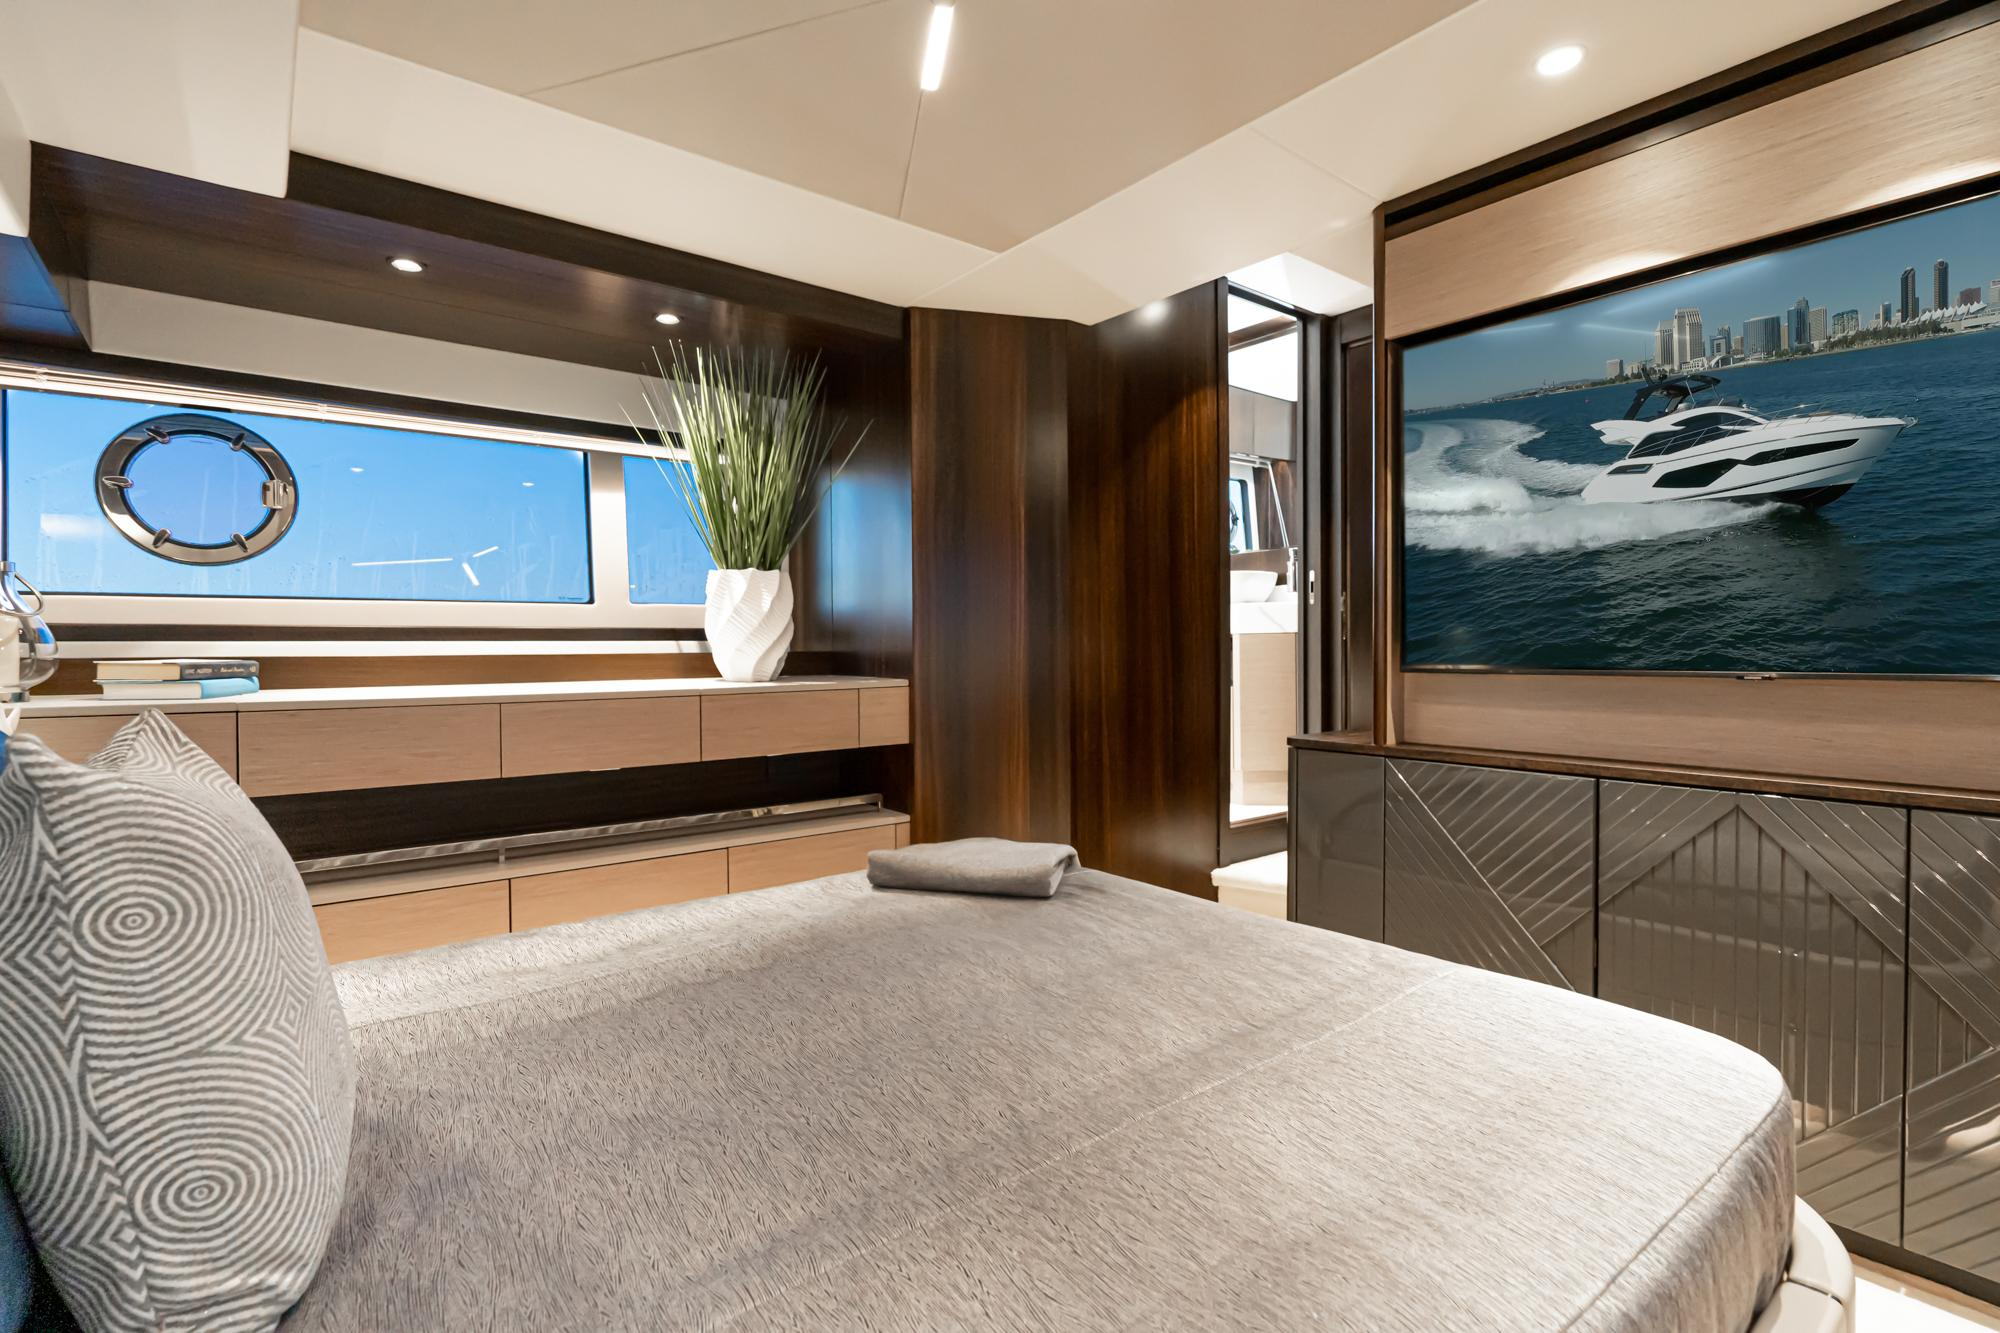 2021 Sunseeker Manhattan 55 #SS304 inventory image at Sun Country Yachts in Newport Beach